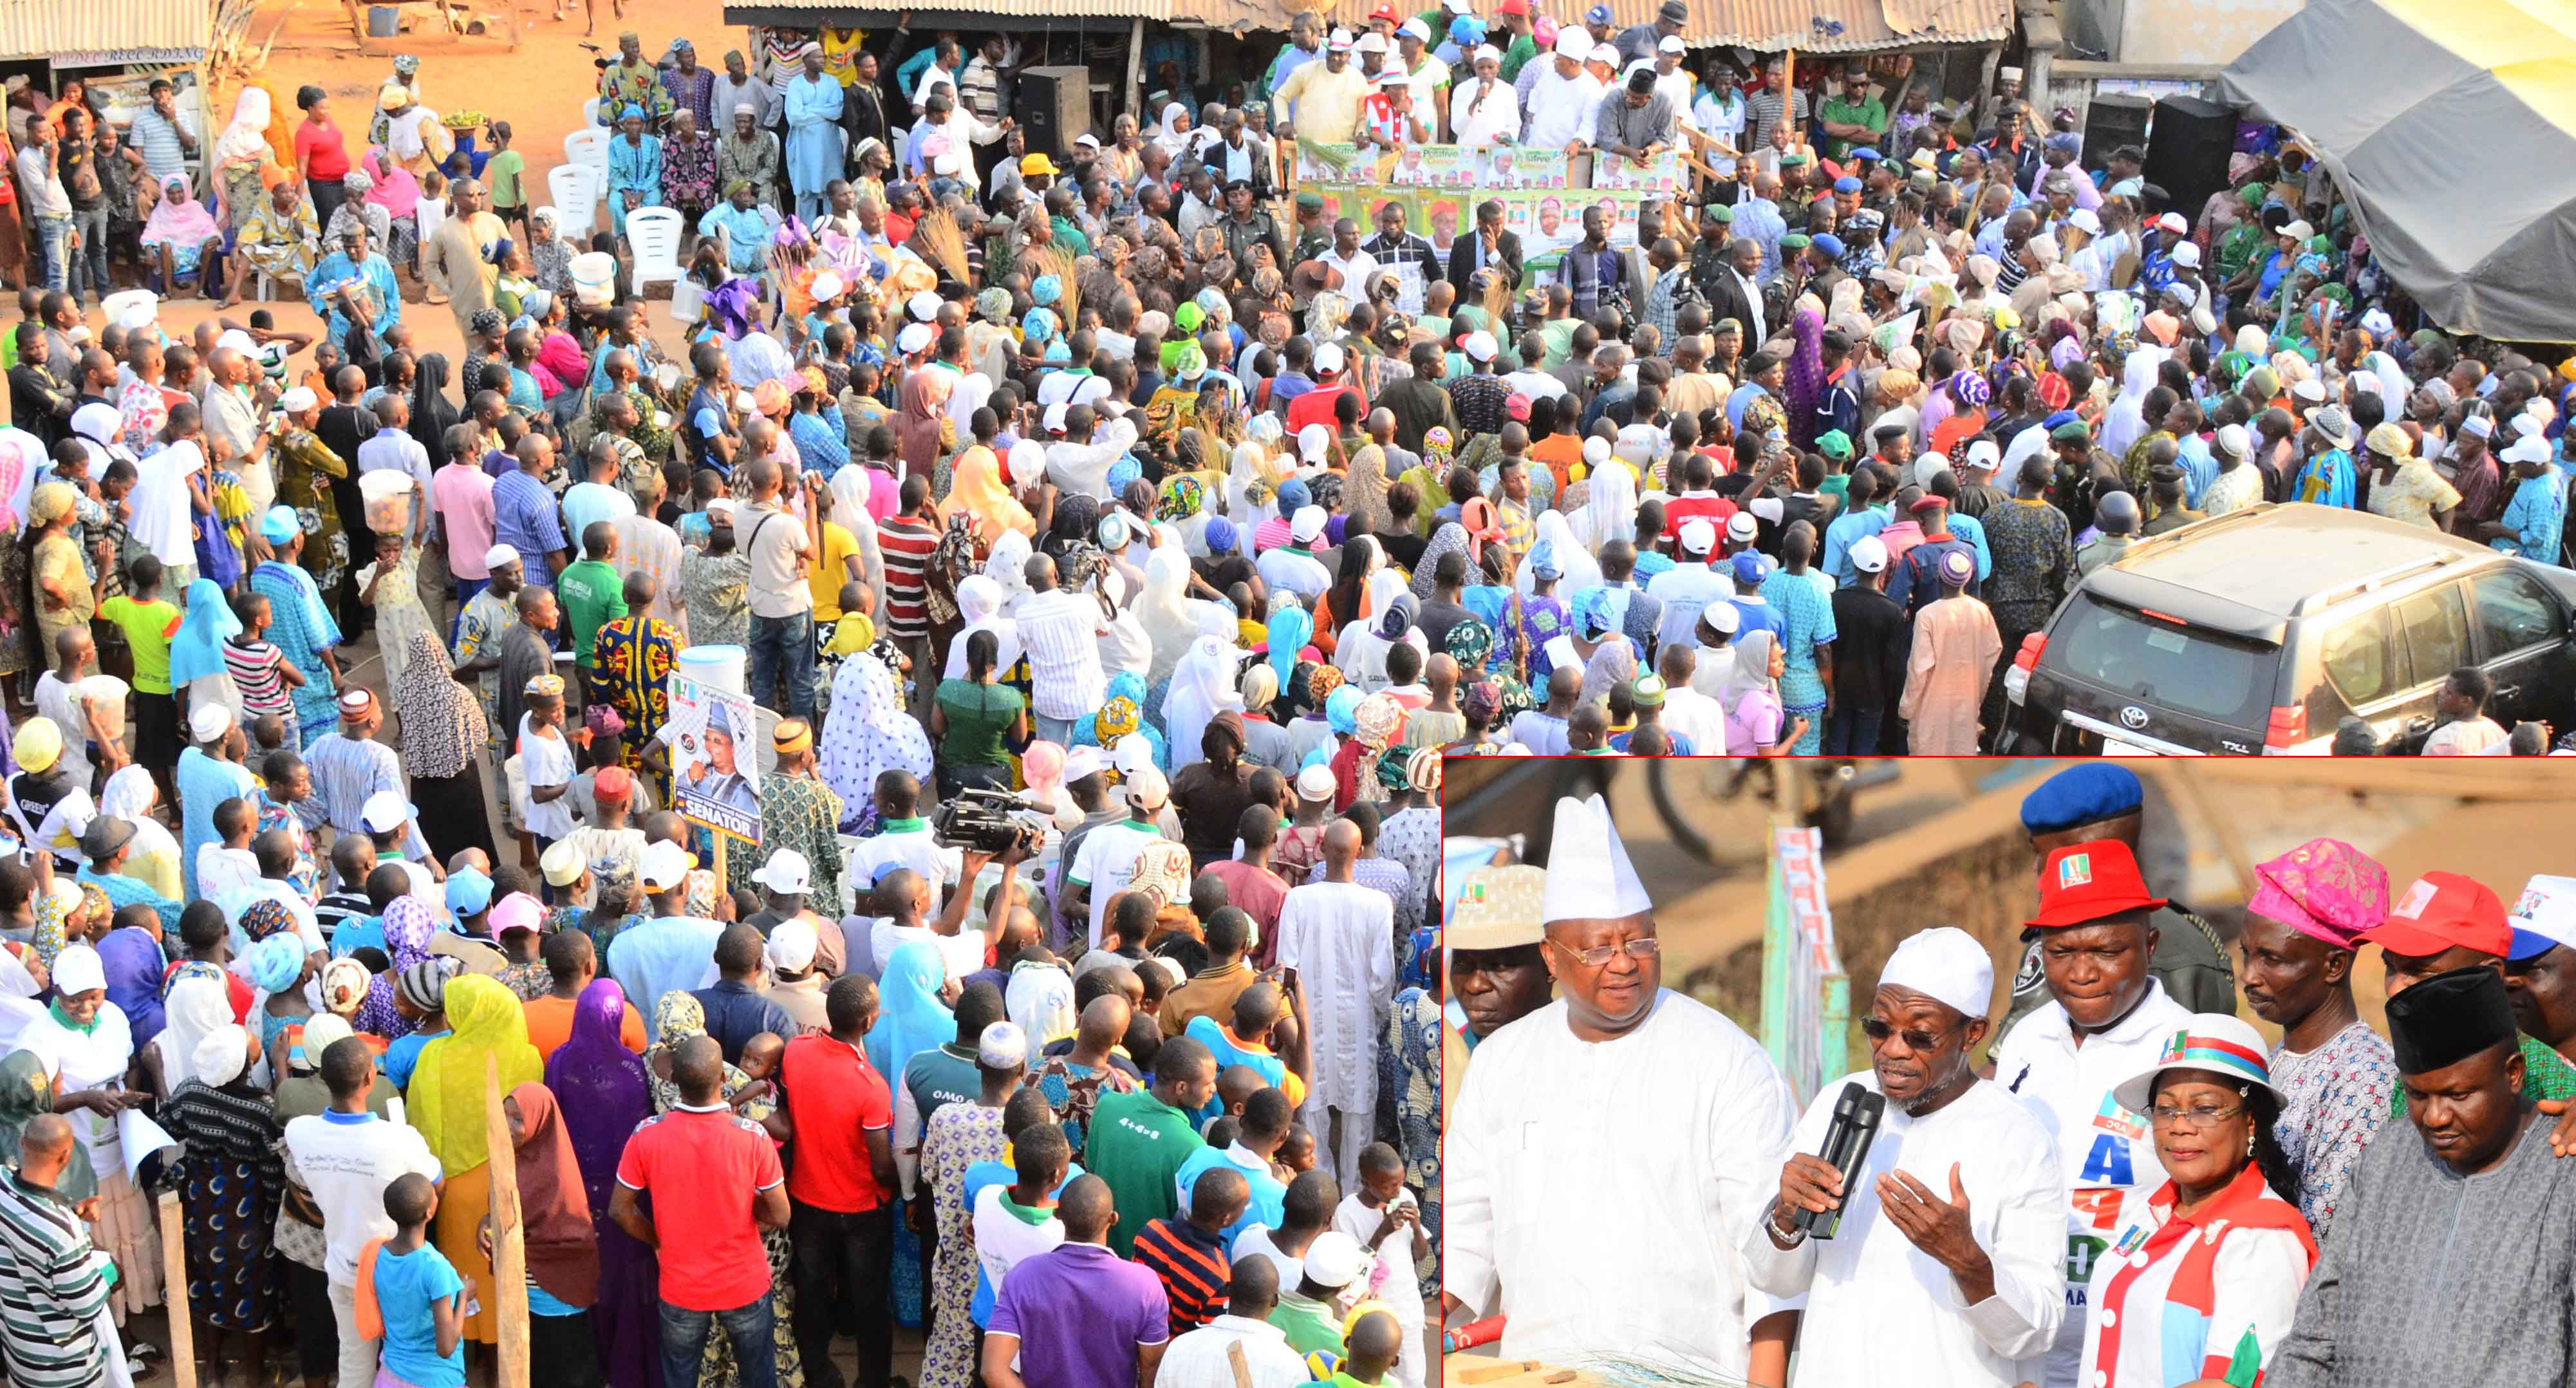 State of Osun Supporters of All Progressives Congress (APC) at a Campaign Rally for General Muhammadu Buhari and National Assembly aspirants in Osun West Senatorial District at Ile-Ogbo. Insert: From left, Senatorial Aspirant, Osun West Senatorial District, Senator Isiaka Adeleke; Governor Rauf Aregbesola; his Deputy, Mrs Titi Laoye-Tomori; APC State Chairman, Prince Gboyega Famodun and others, during the weekend